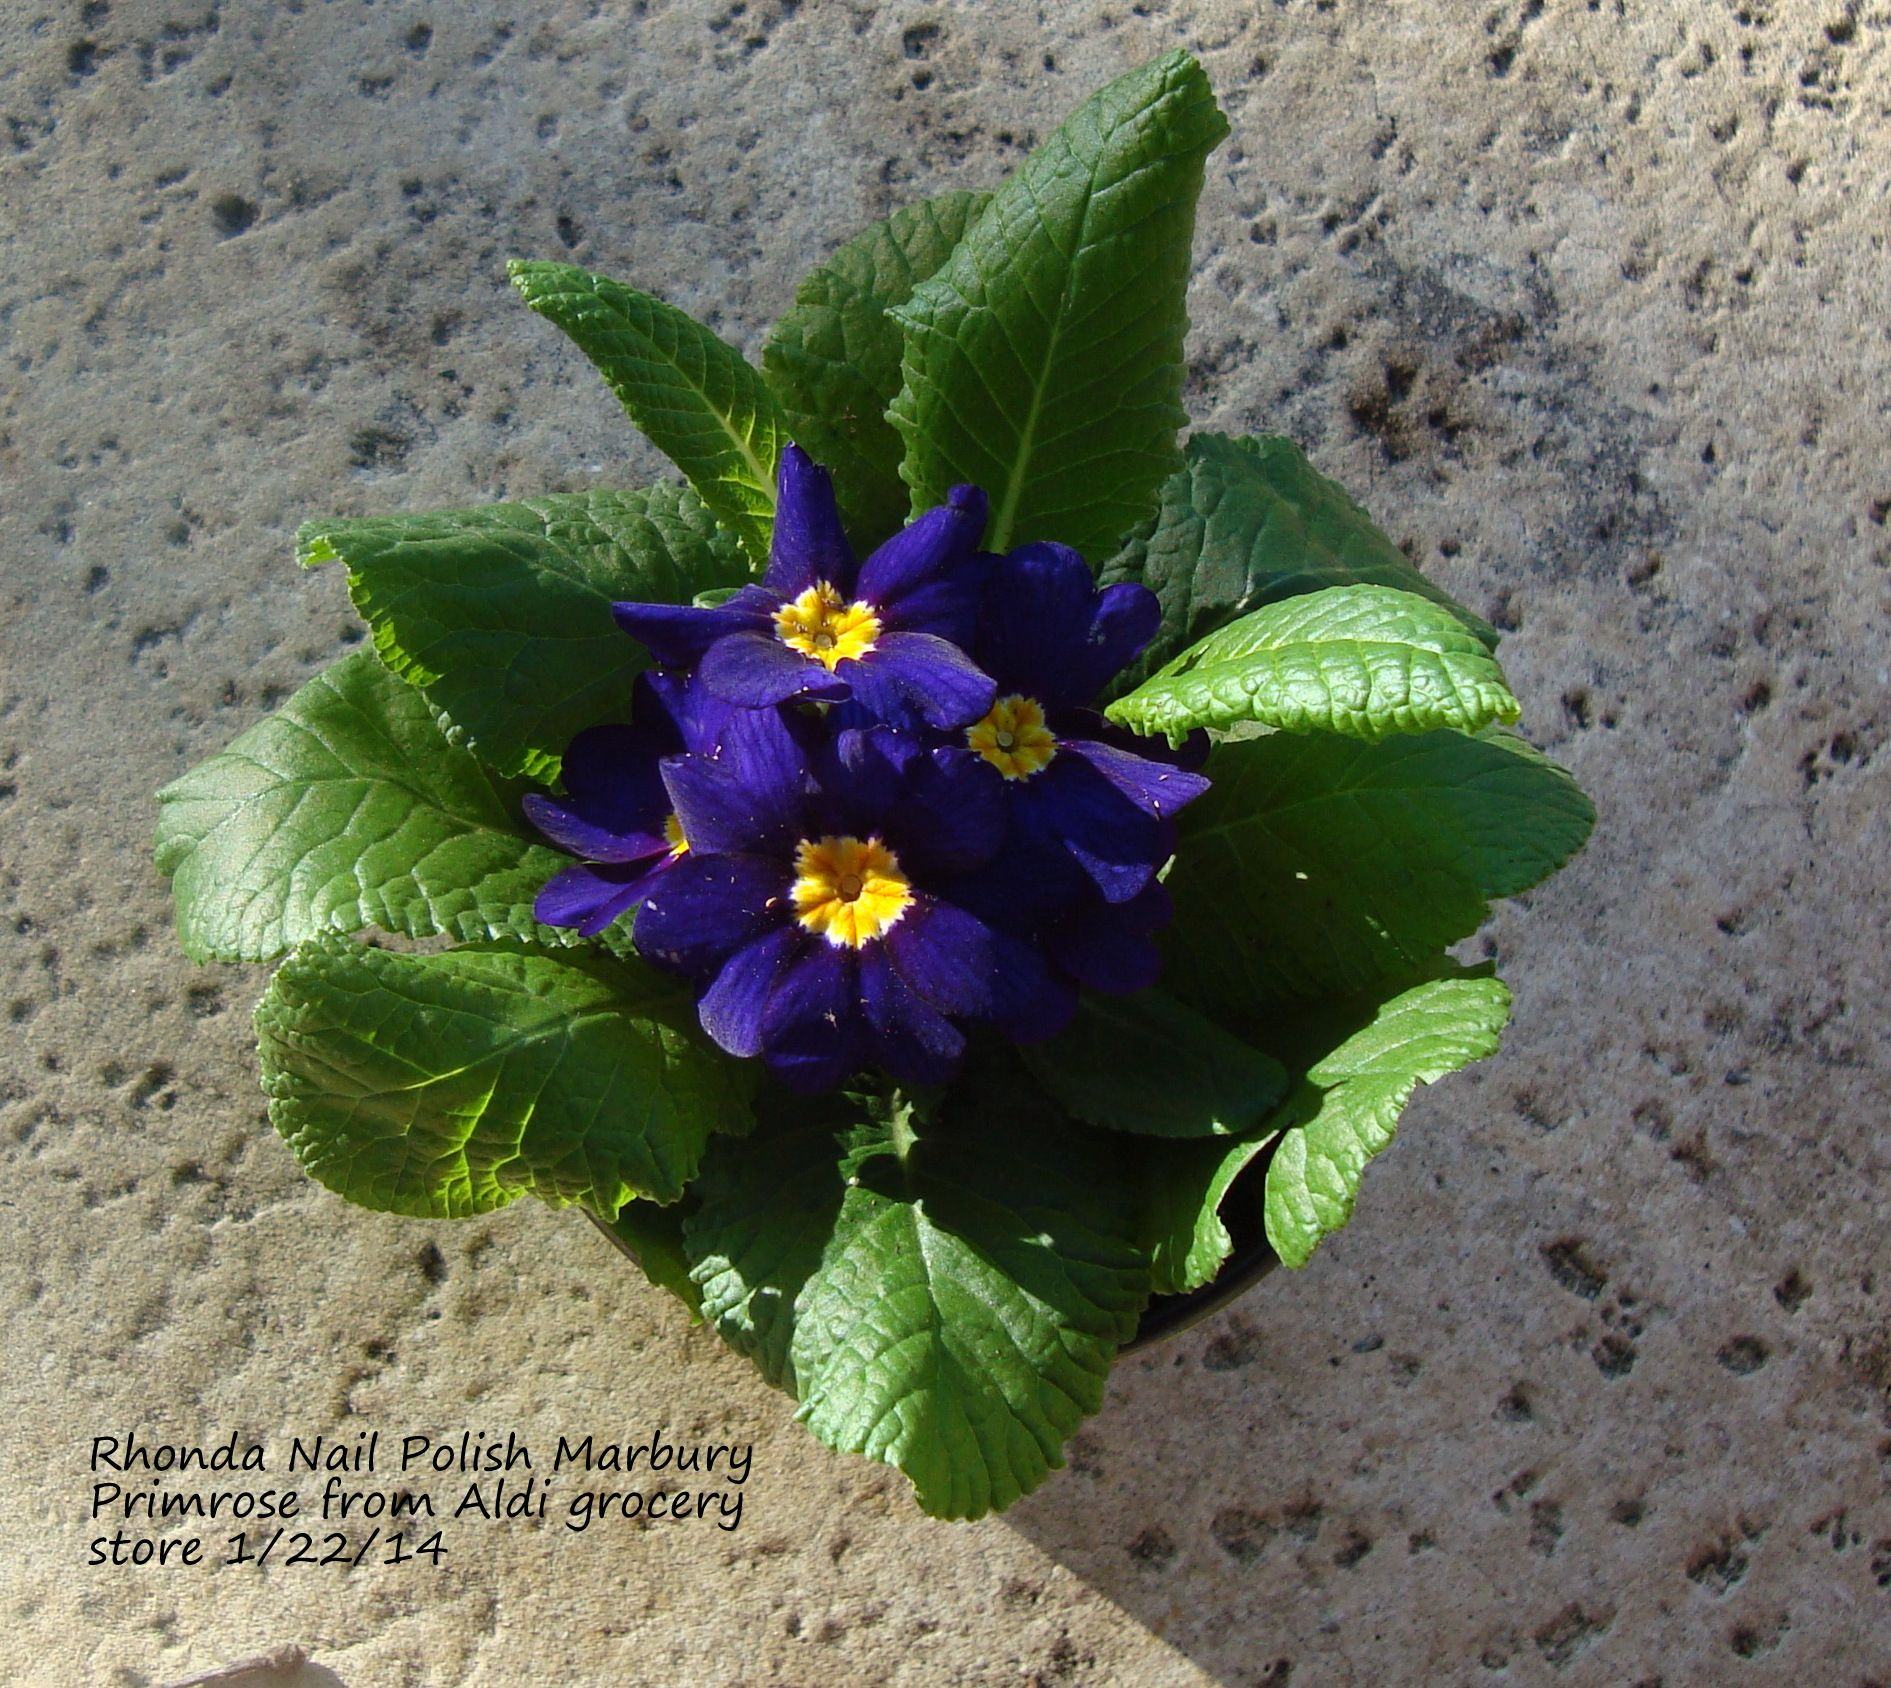 Primrose Purple Flower Purchased From Aldi 1 22 14 For 400 x 300